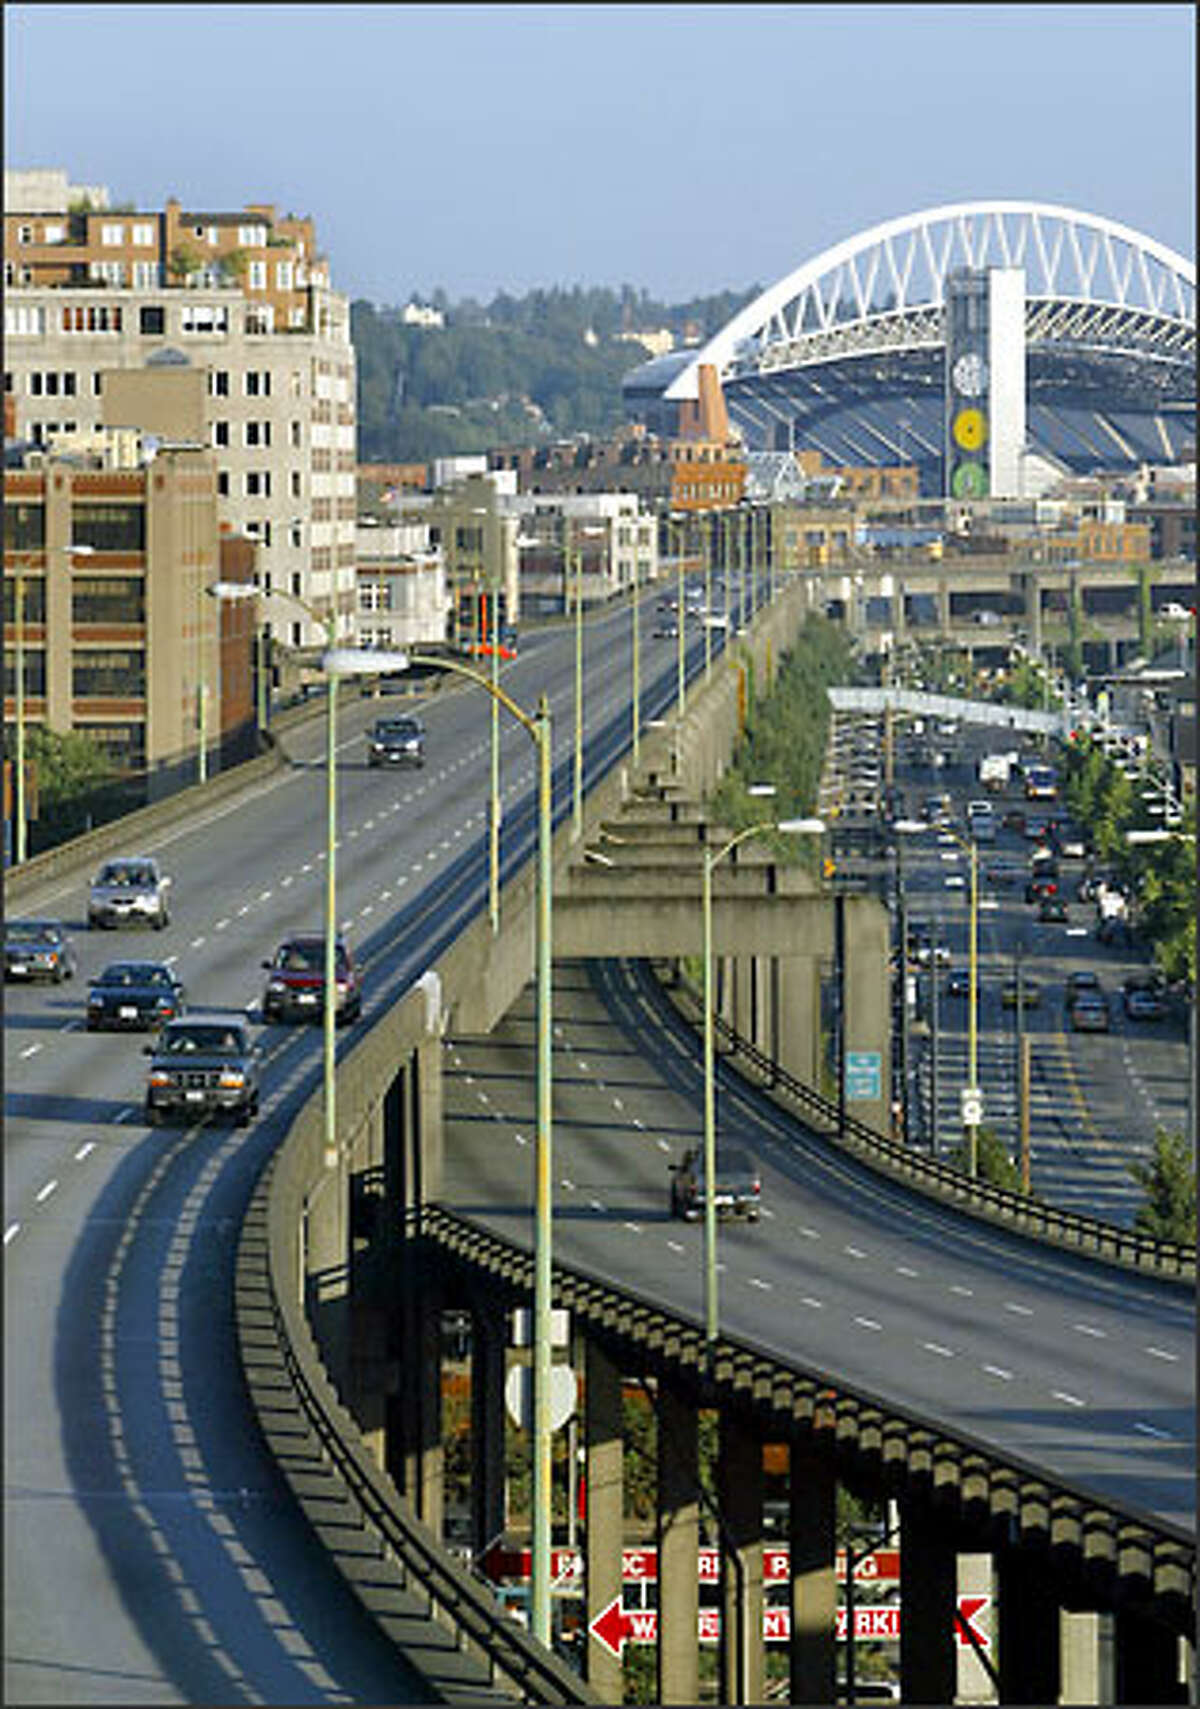 Cary Moon won several awards in Seattle, including the Stranger's Genius Award in 2007 for her efforts to try and halt plans to dig a tunnel under Seattle to replace the Alaskan Way Viaduct. She was also named the Municipal League's Citizen of the Year in 2009, and earned Seattle Magazine's Most Influential People award and Real Change's Change Agent of the Year.